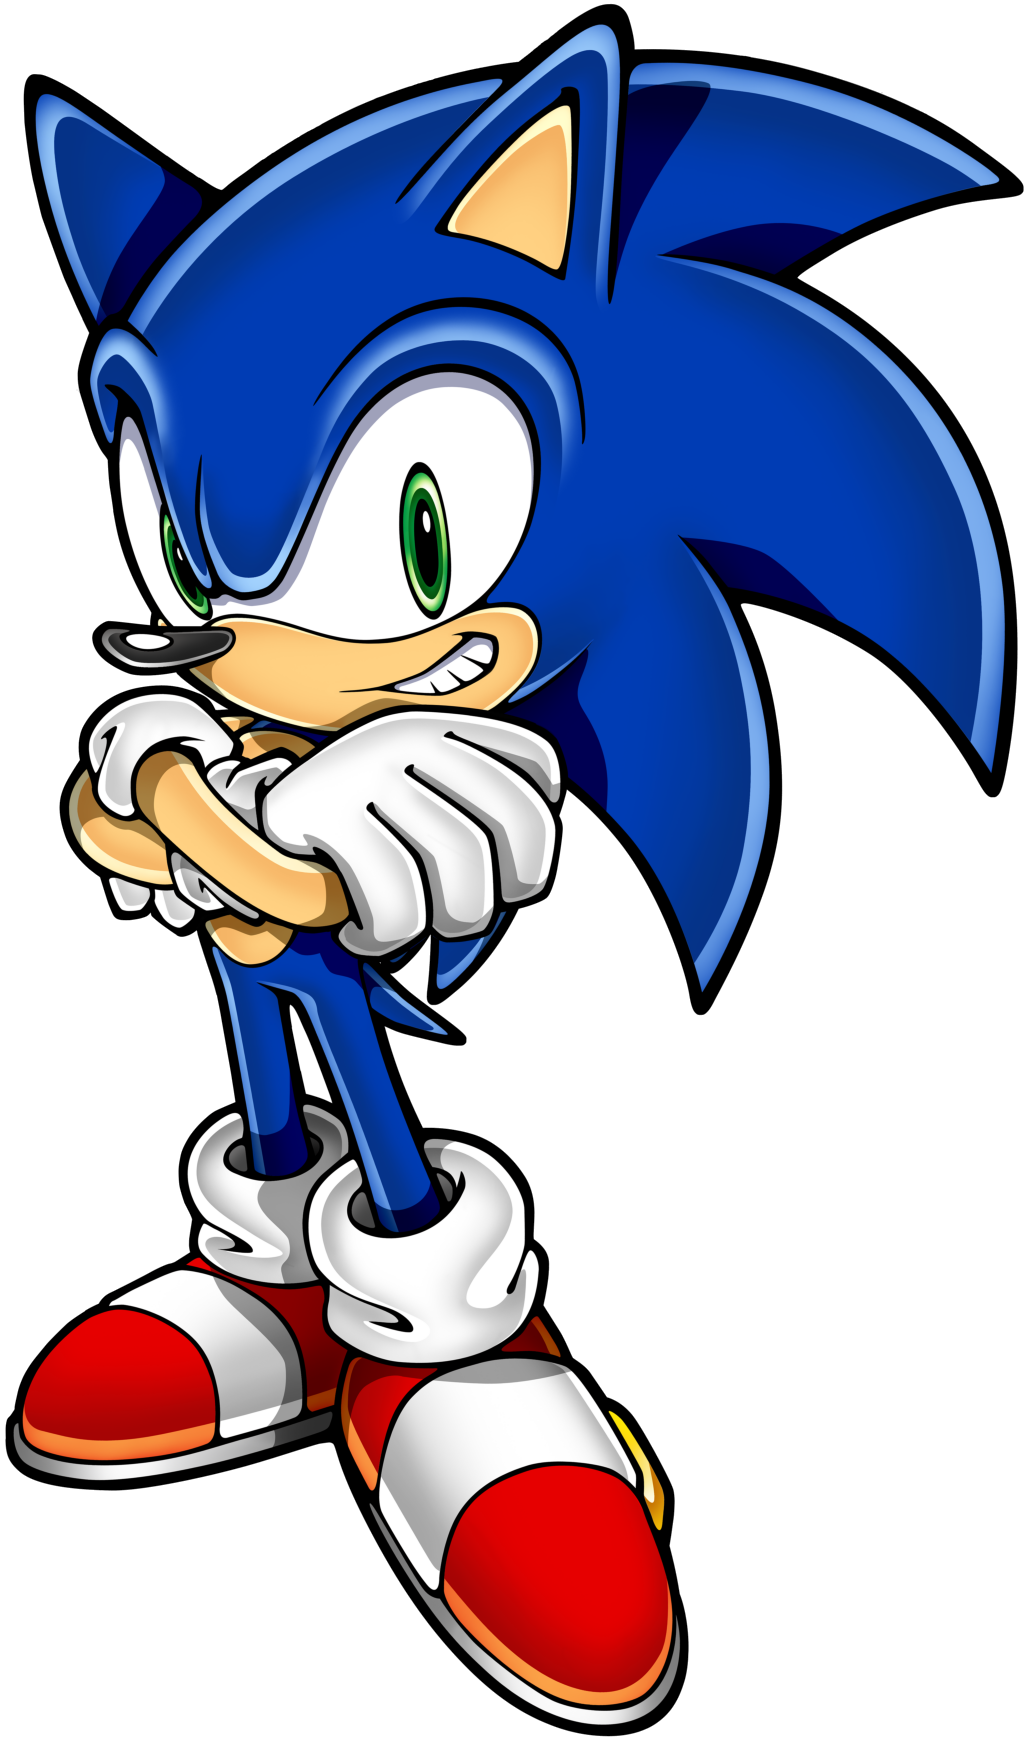 sonic the hedgehog the dimension saga wiki fandom powered by wikia